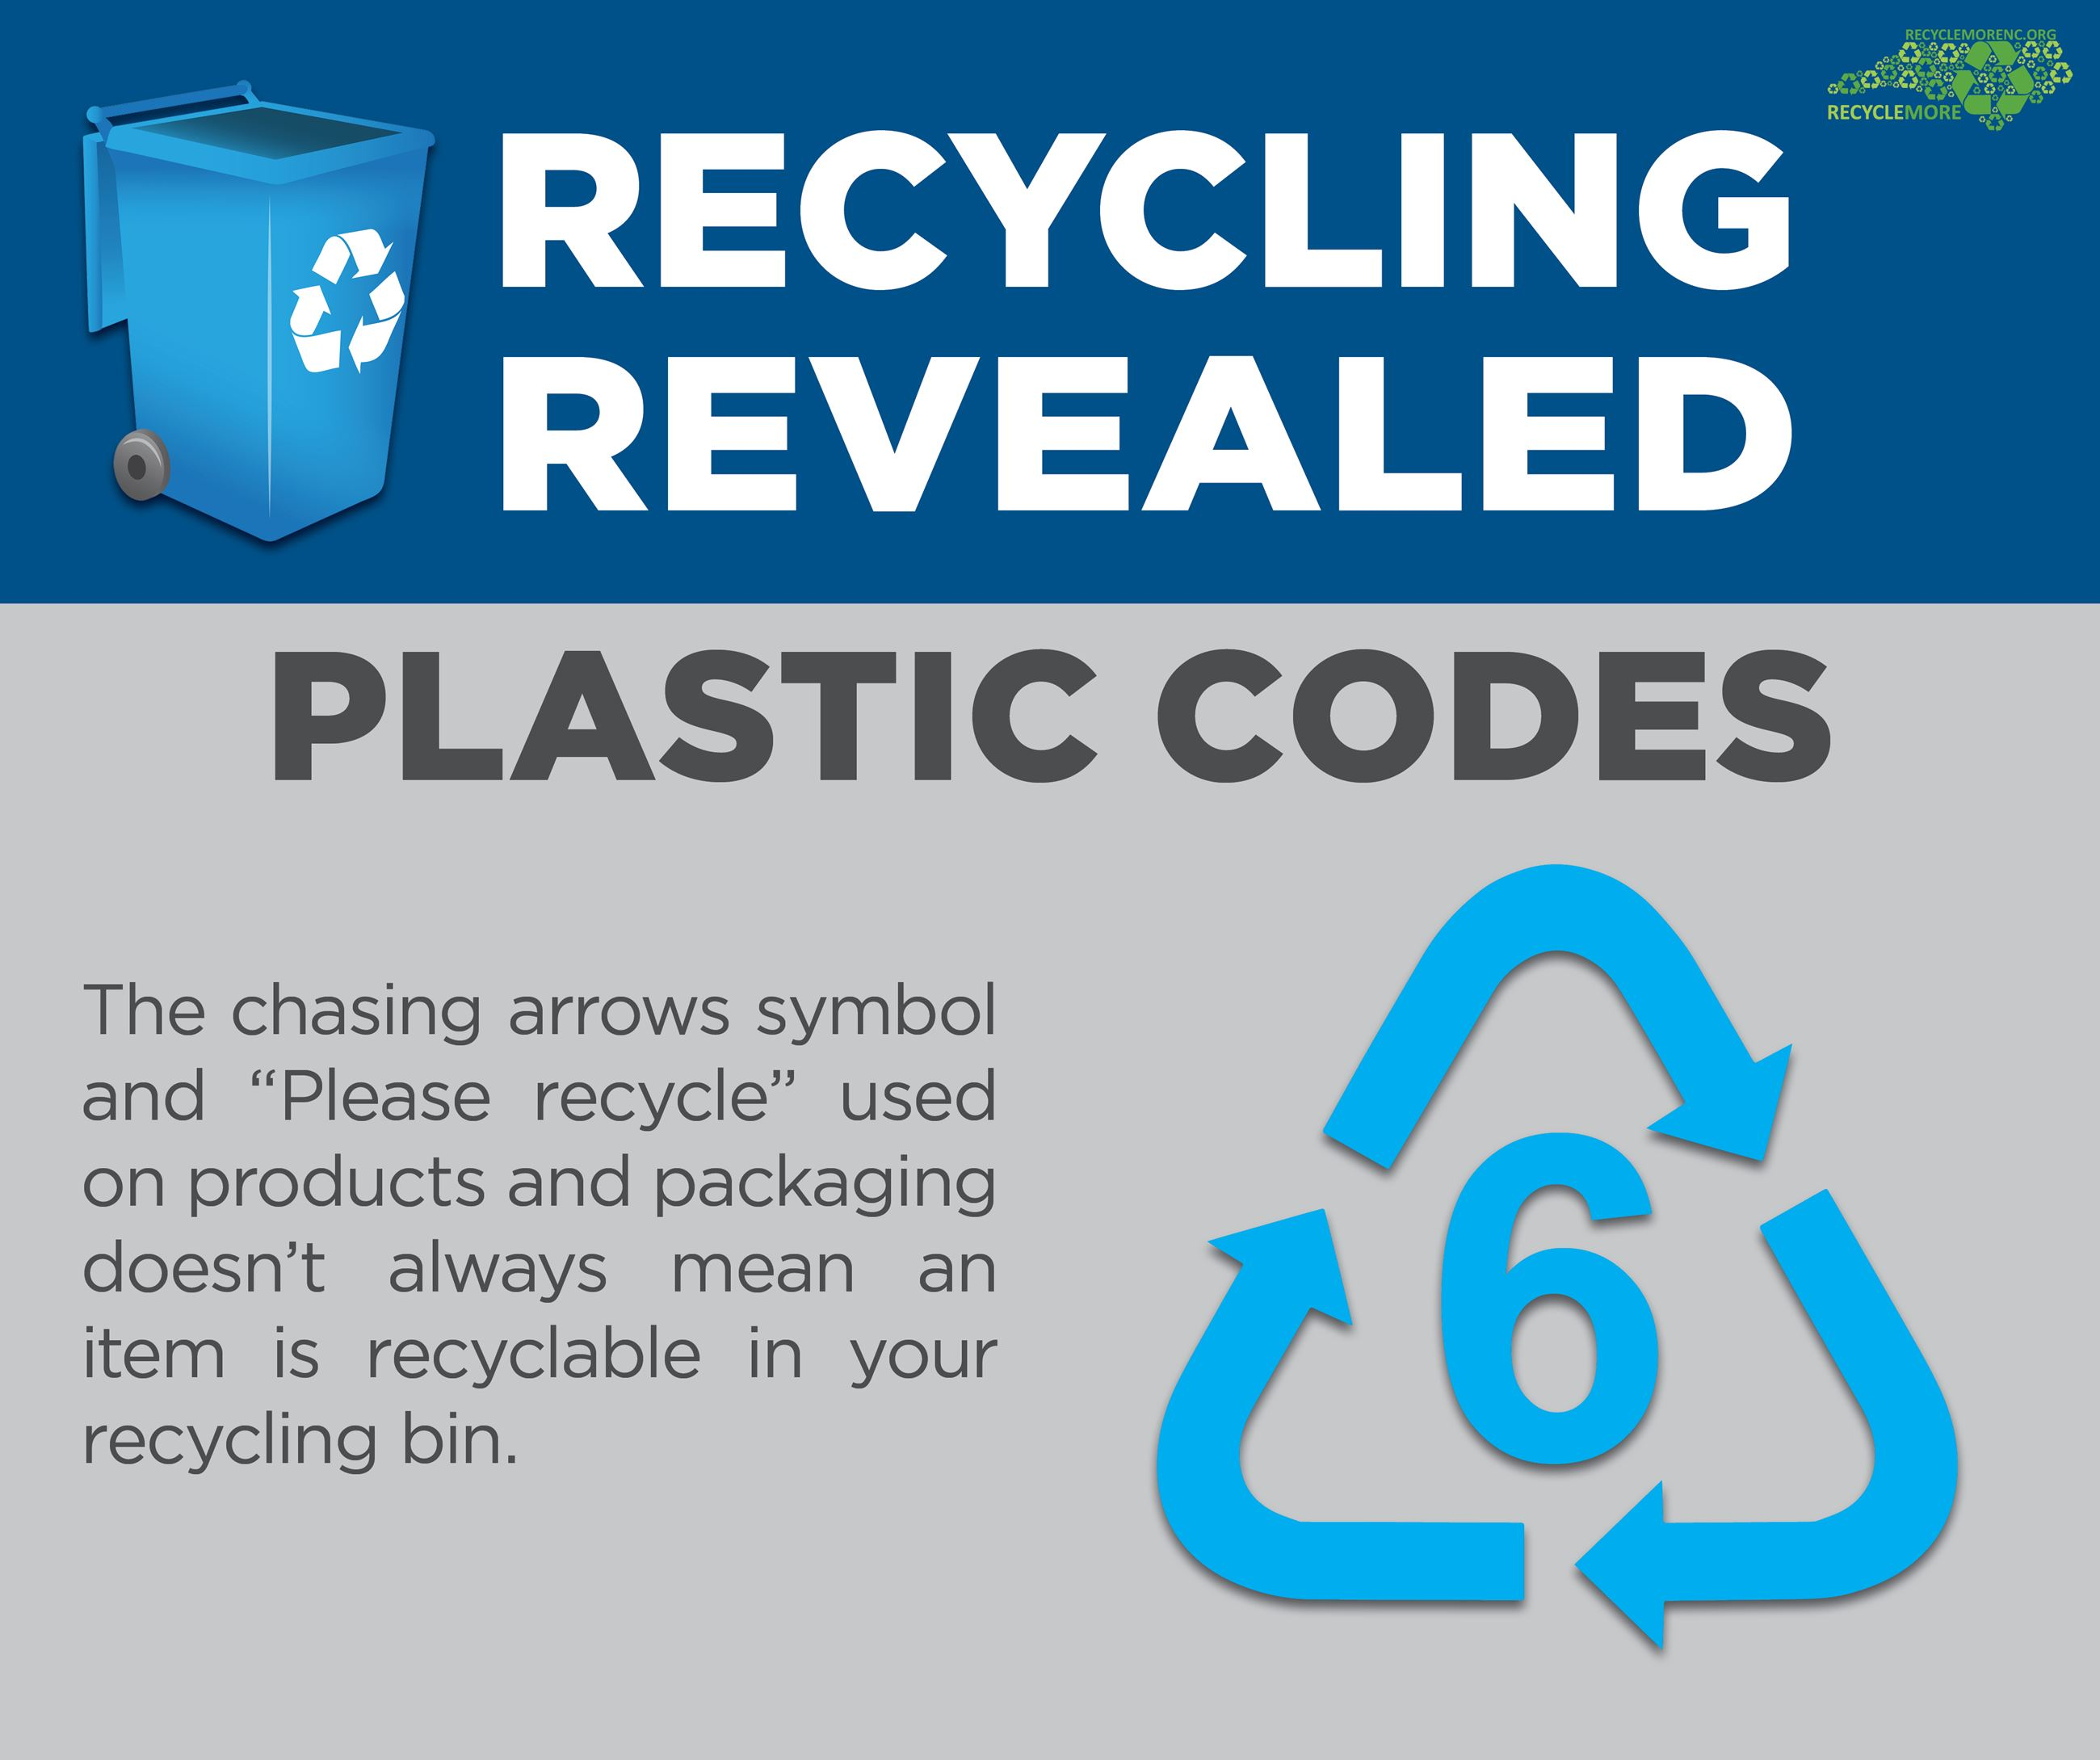 Recycling Revealed Plastic Codes